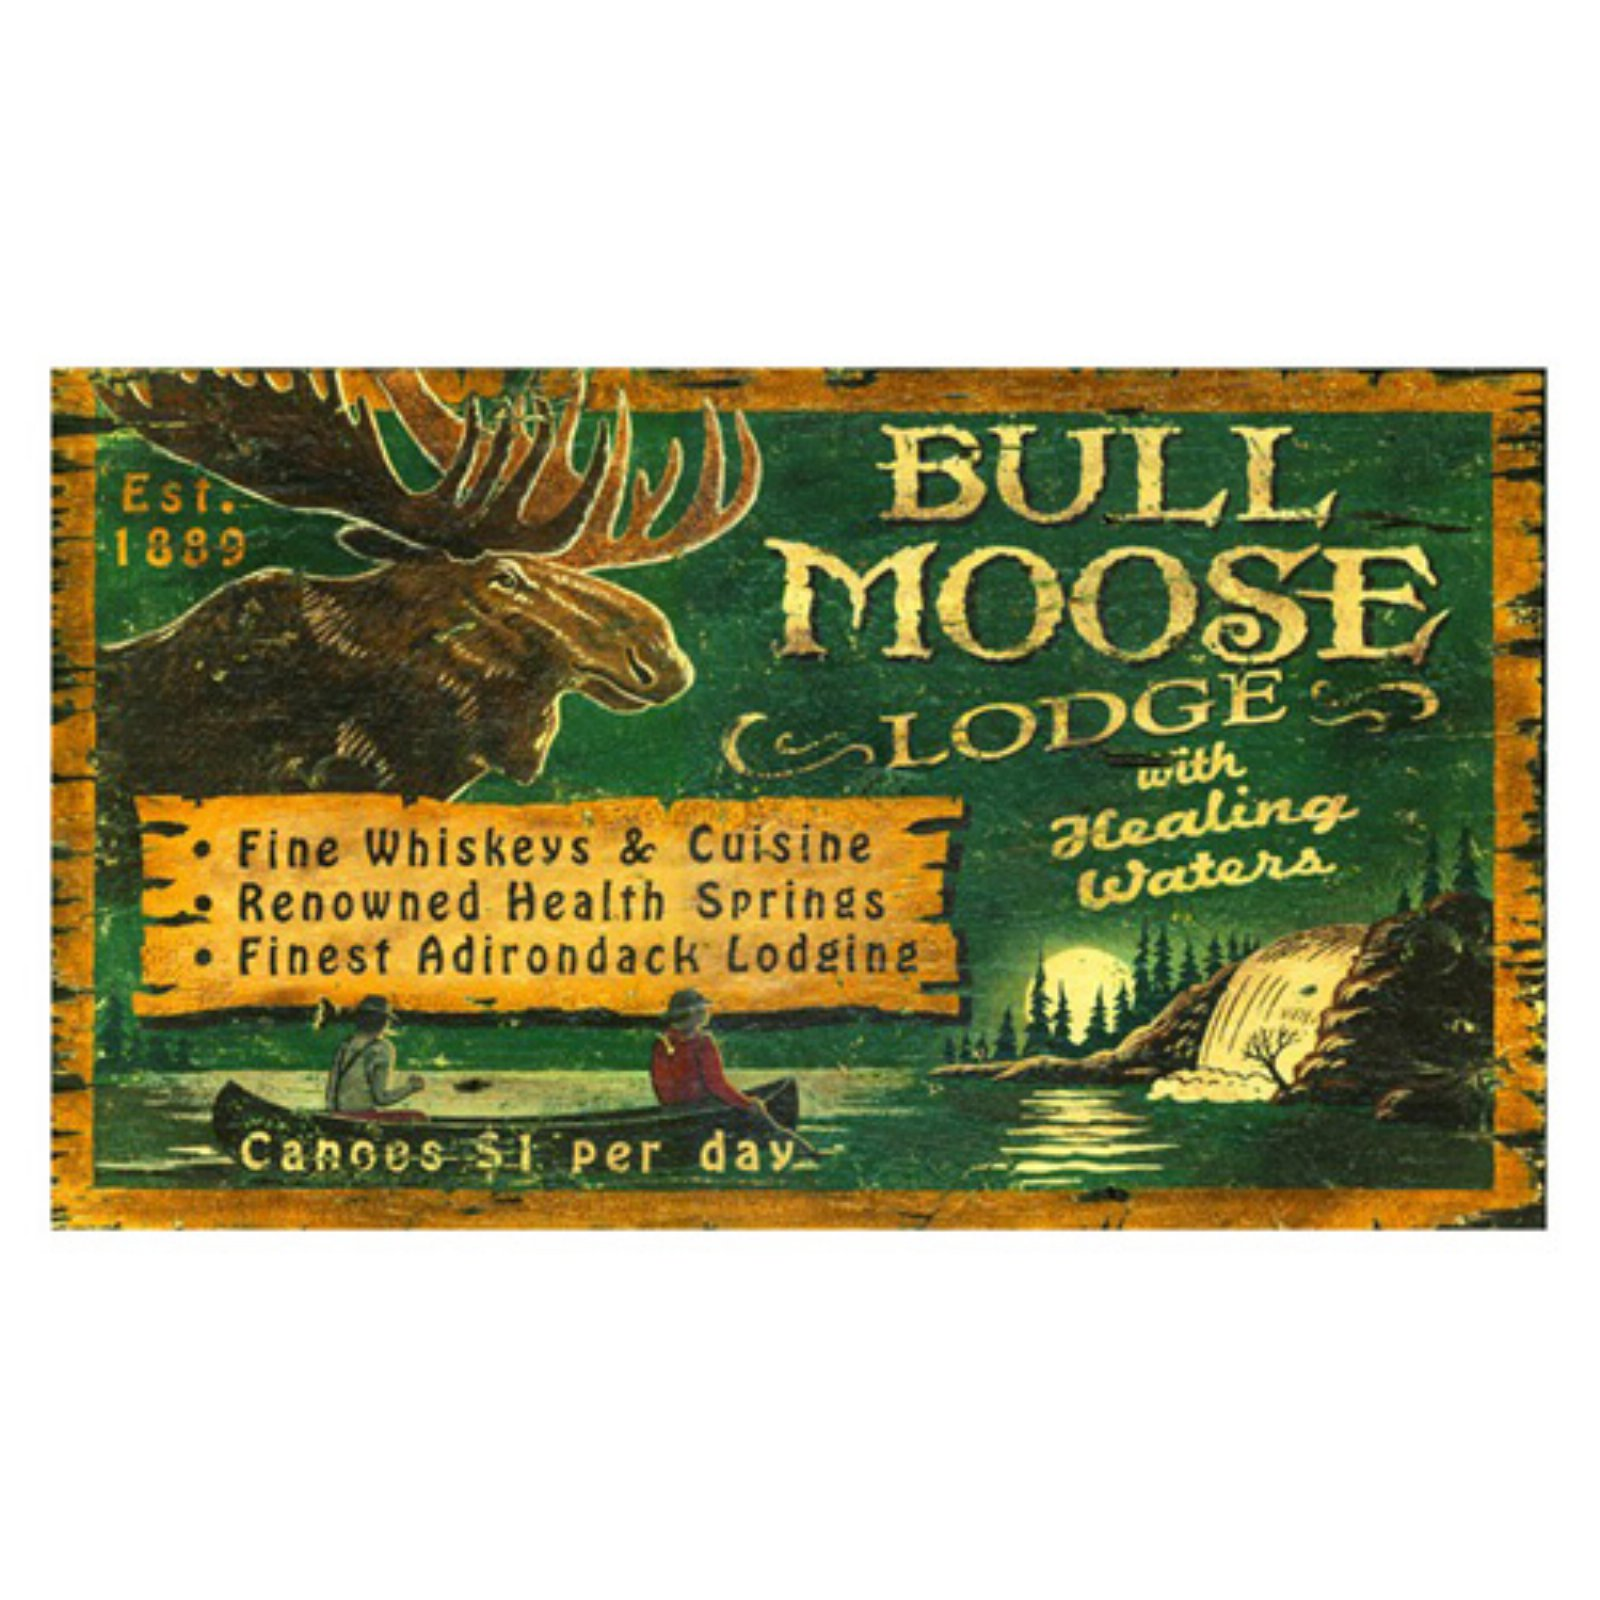 Bull Moose Lodge Wall Art